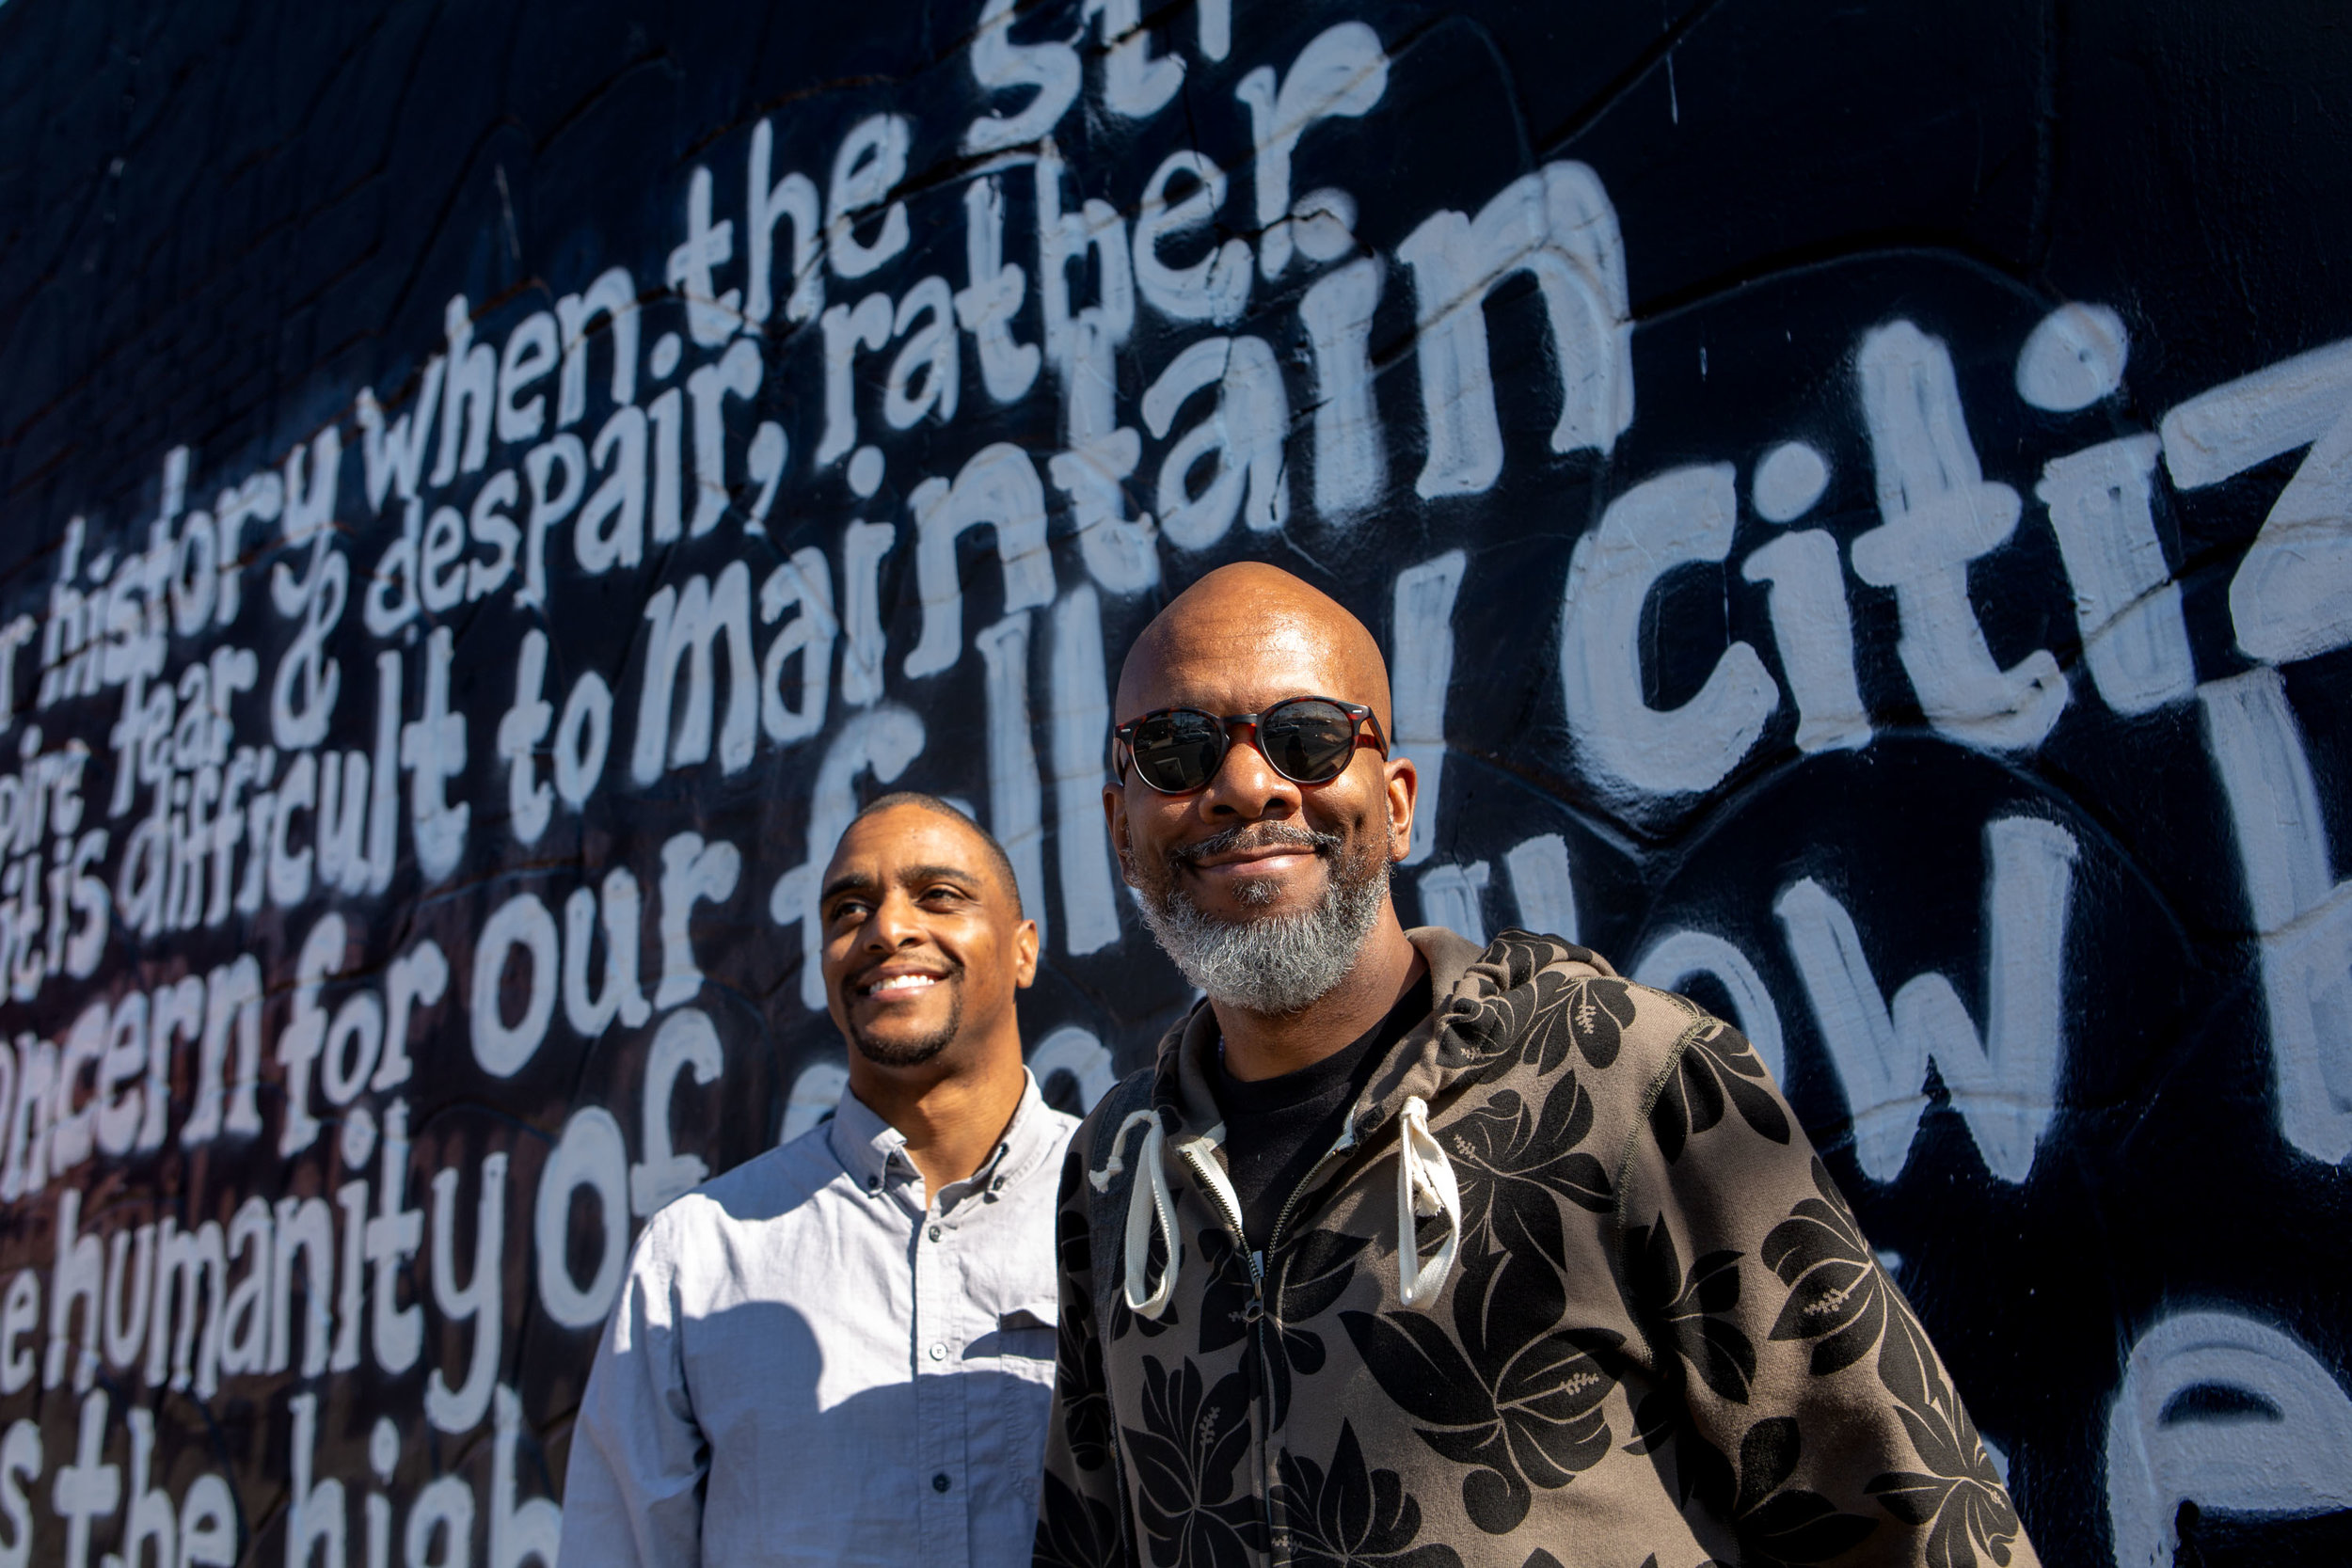 Micah Evans and J. Alan Love  |  Six Square nonprofit, Austin, Texas